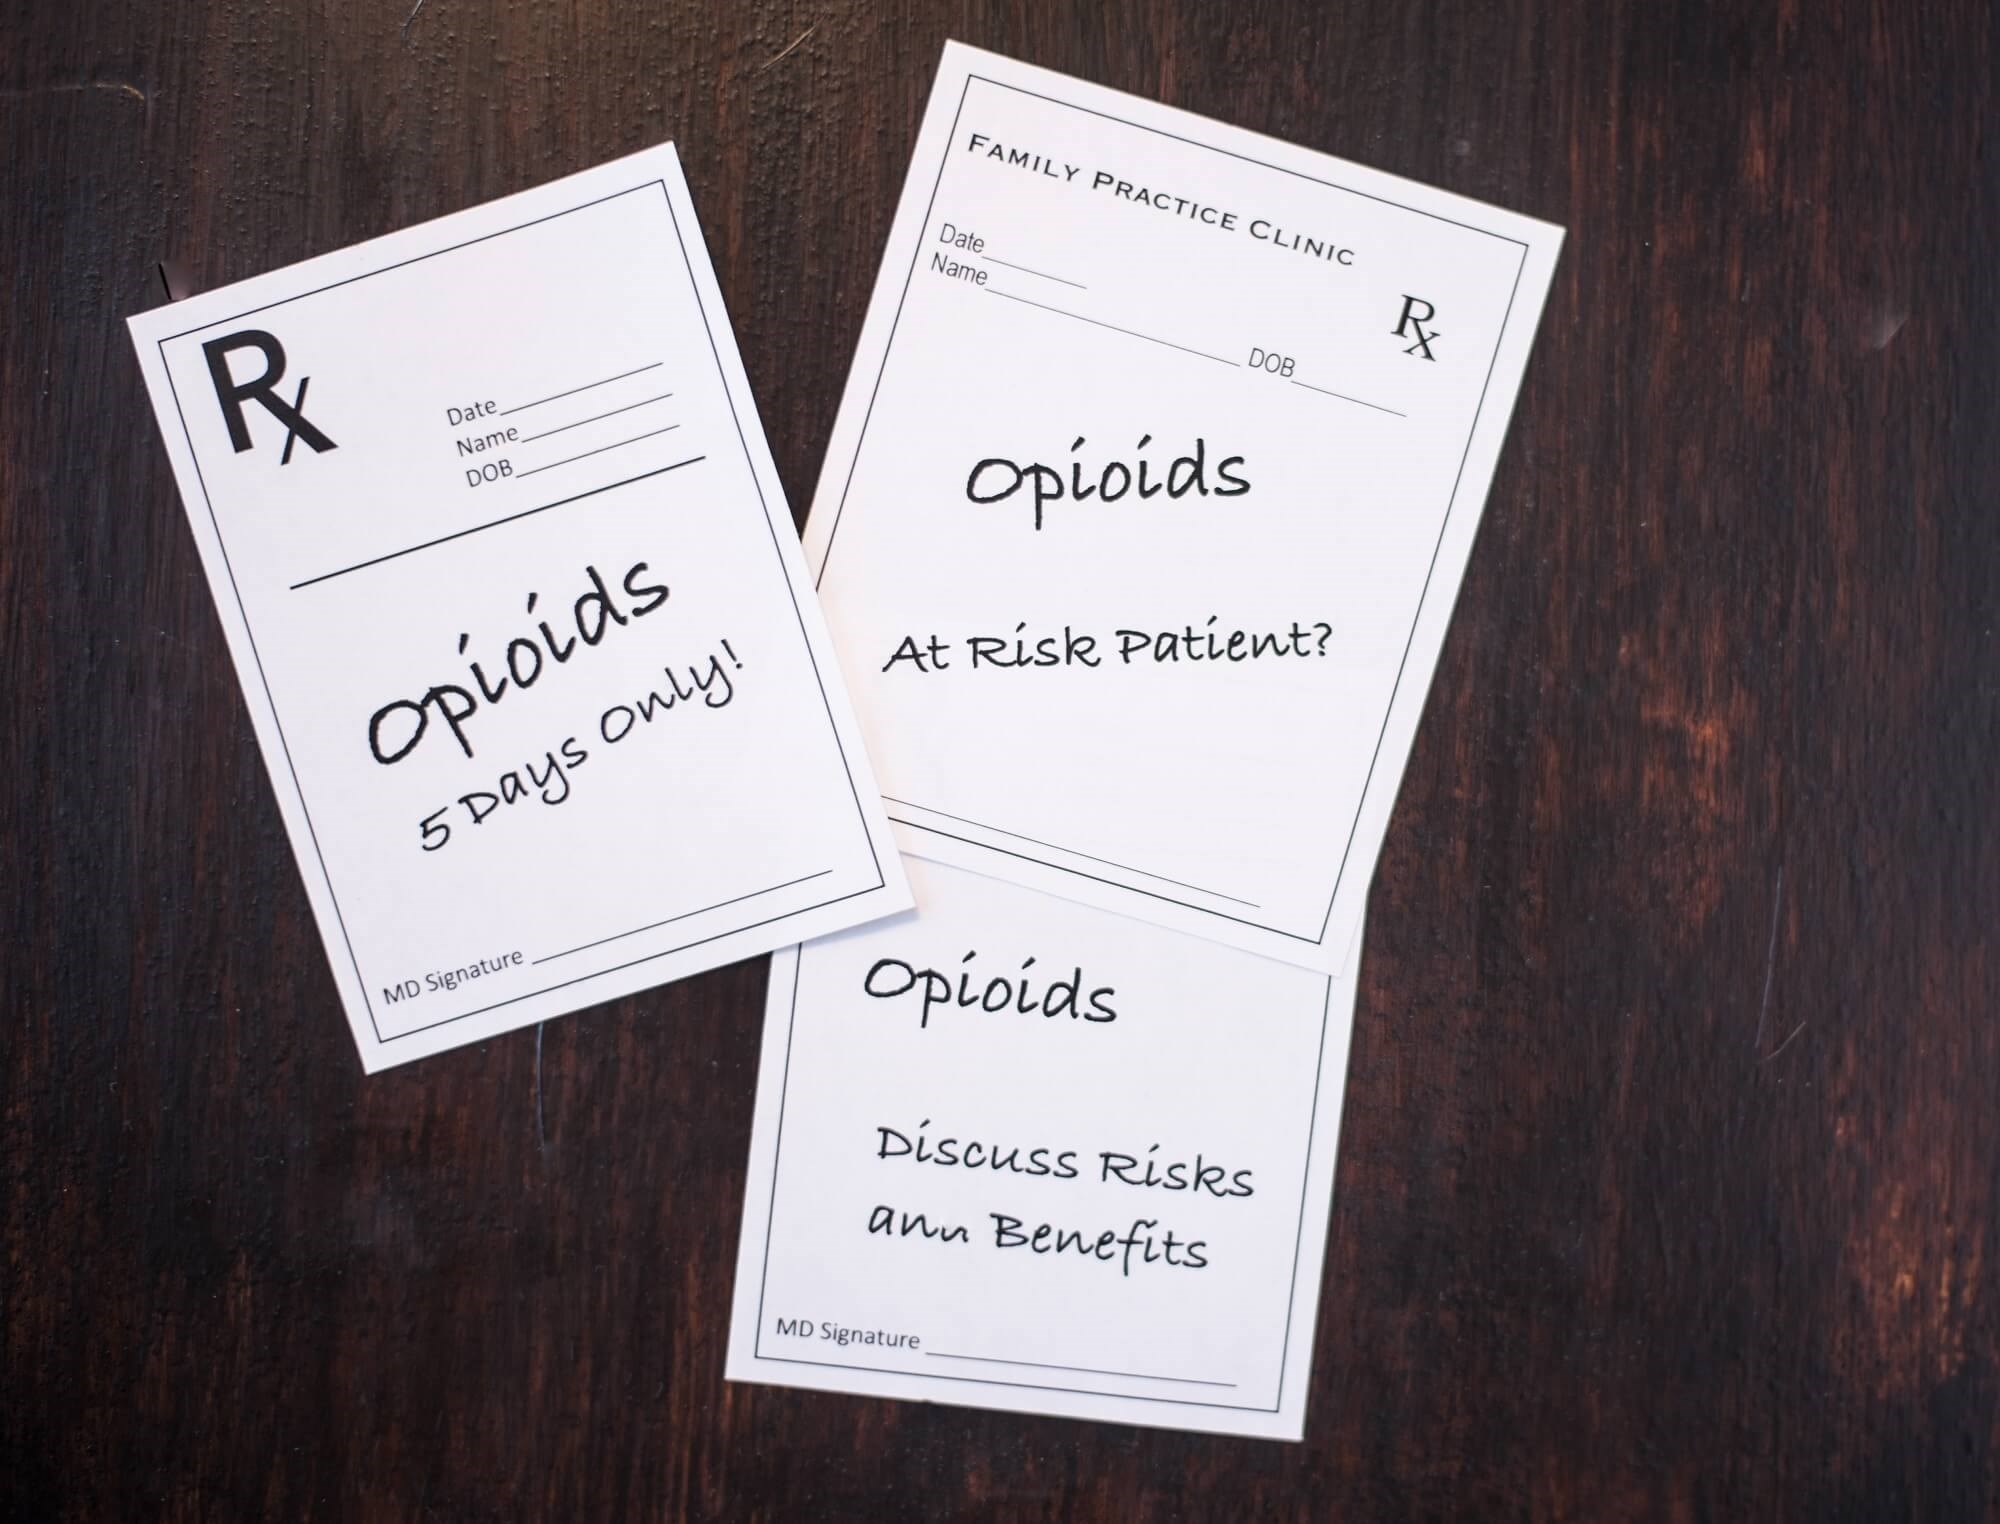 Clinicians should familiarize themselves with their state's medical commission's guidance on opioid prescribing.